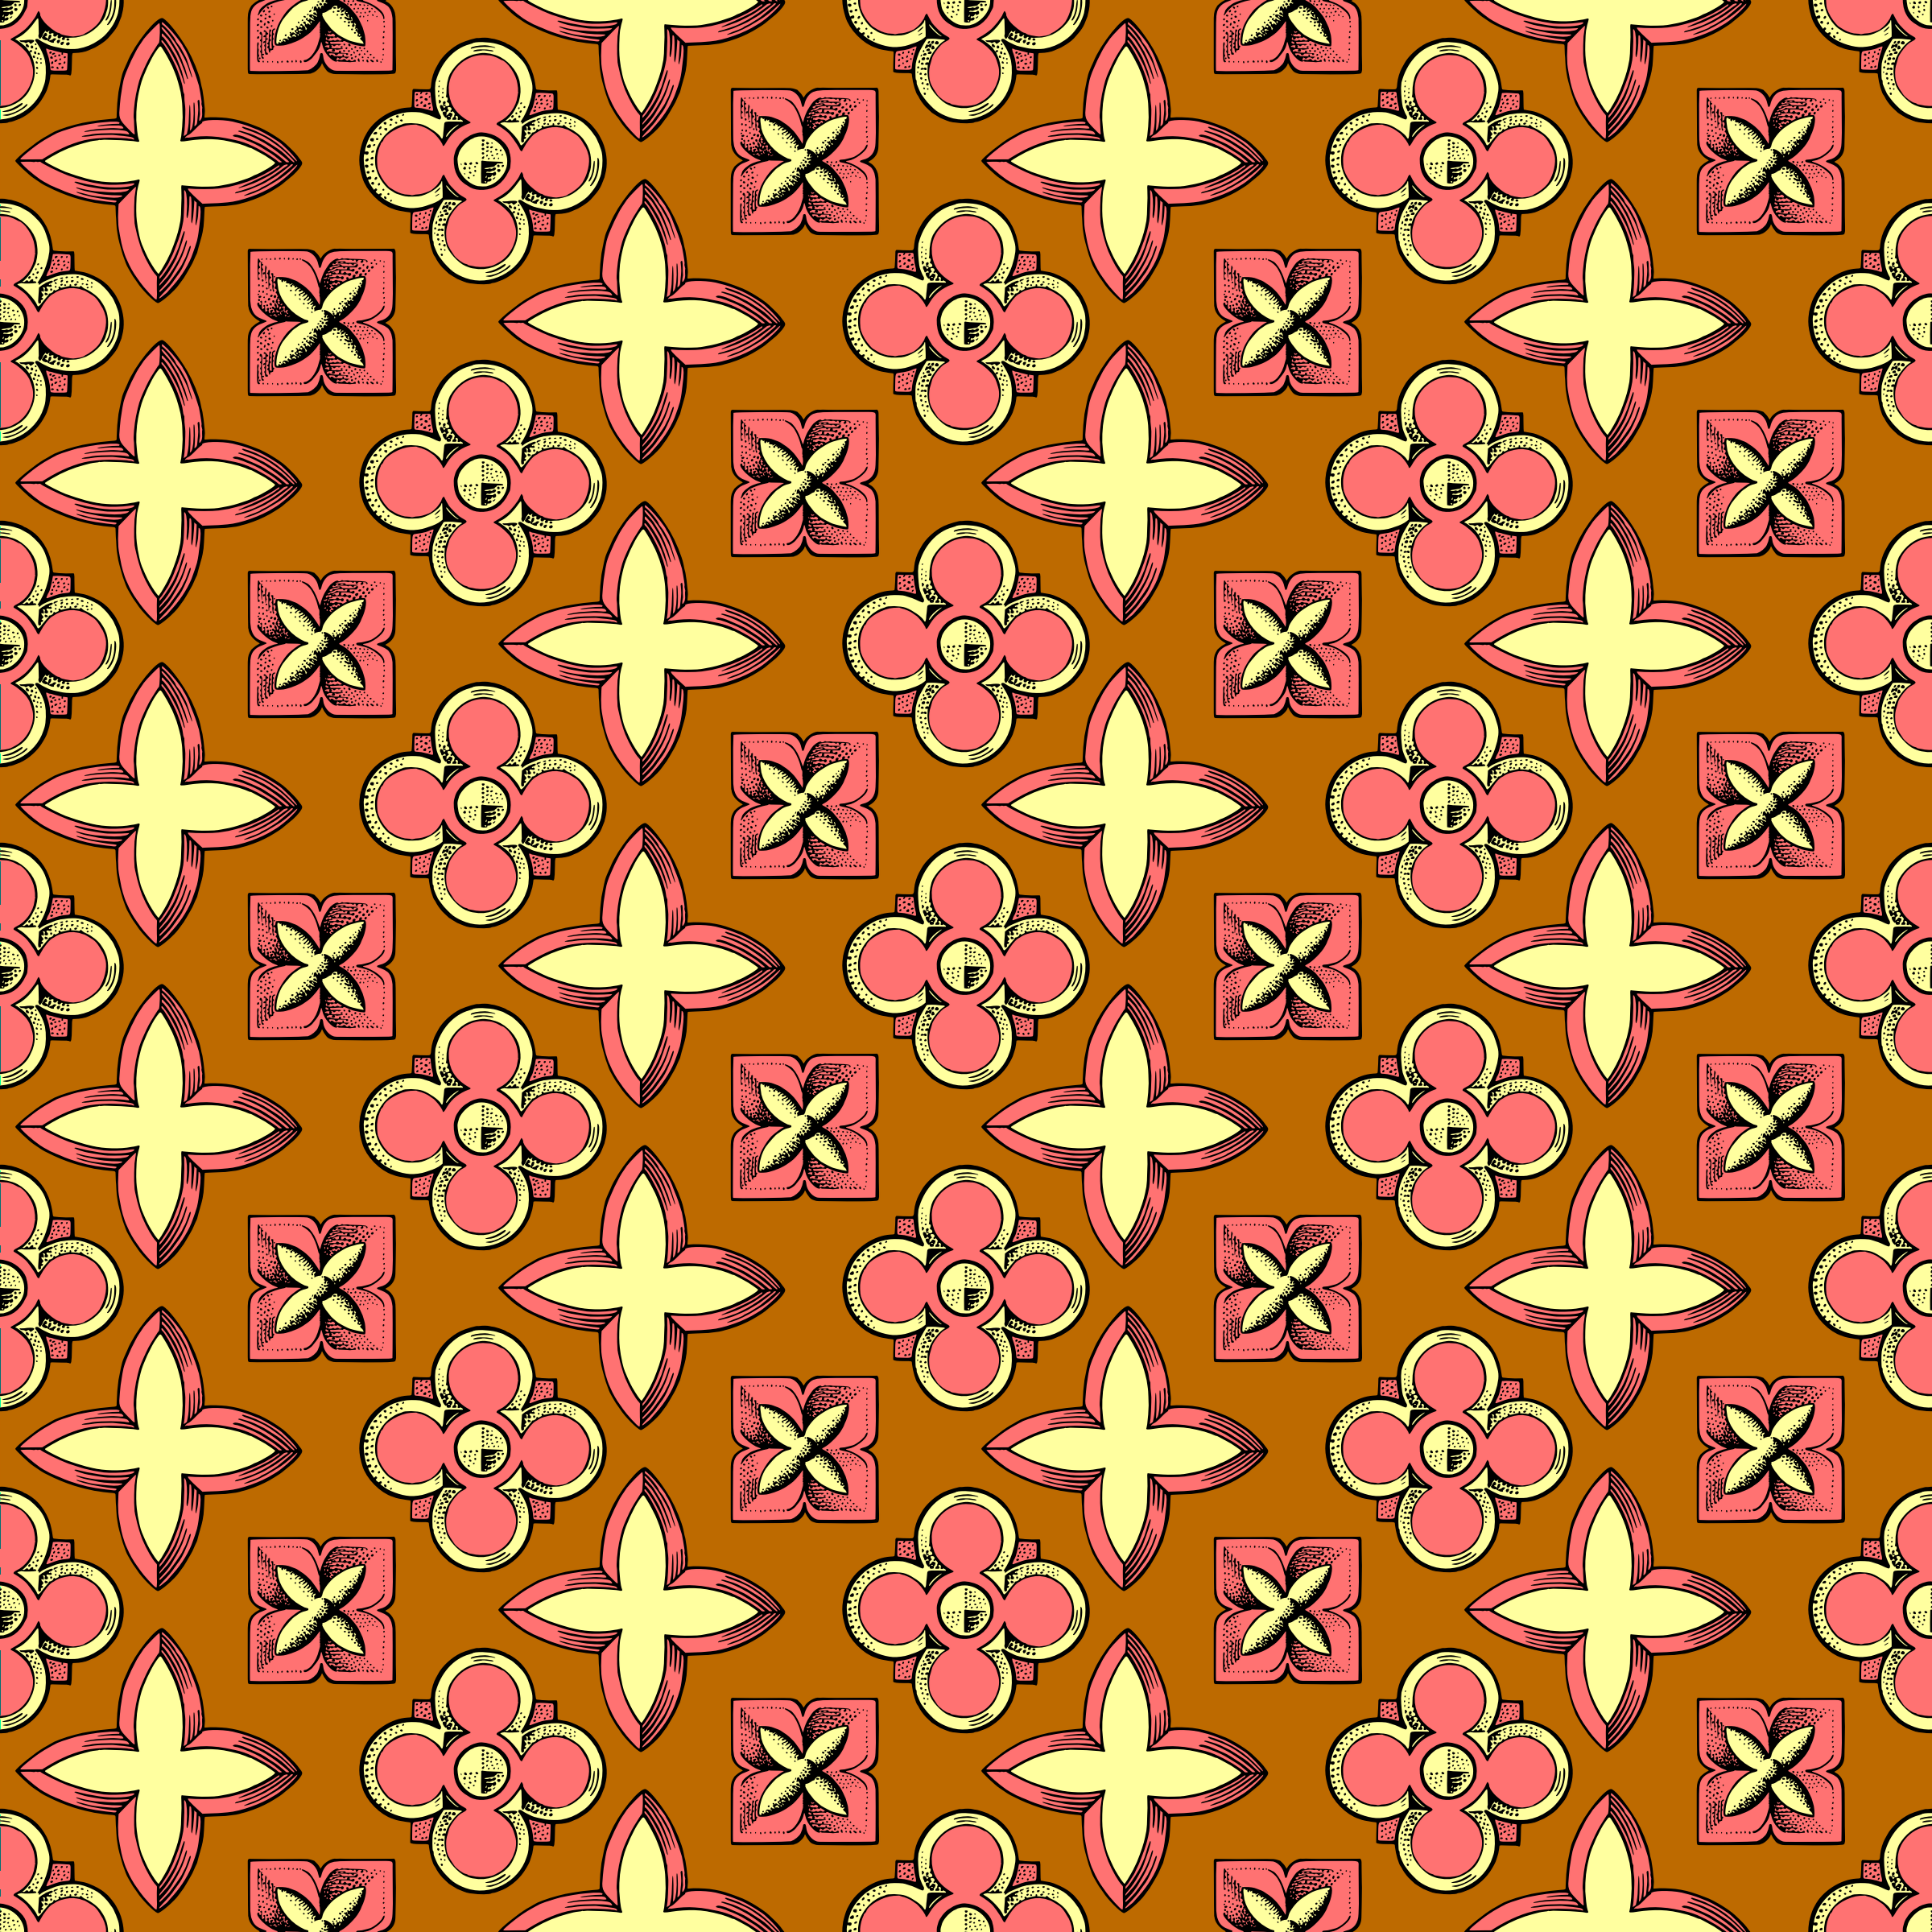 Background pattern 202 by Firkin